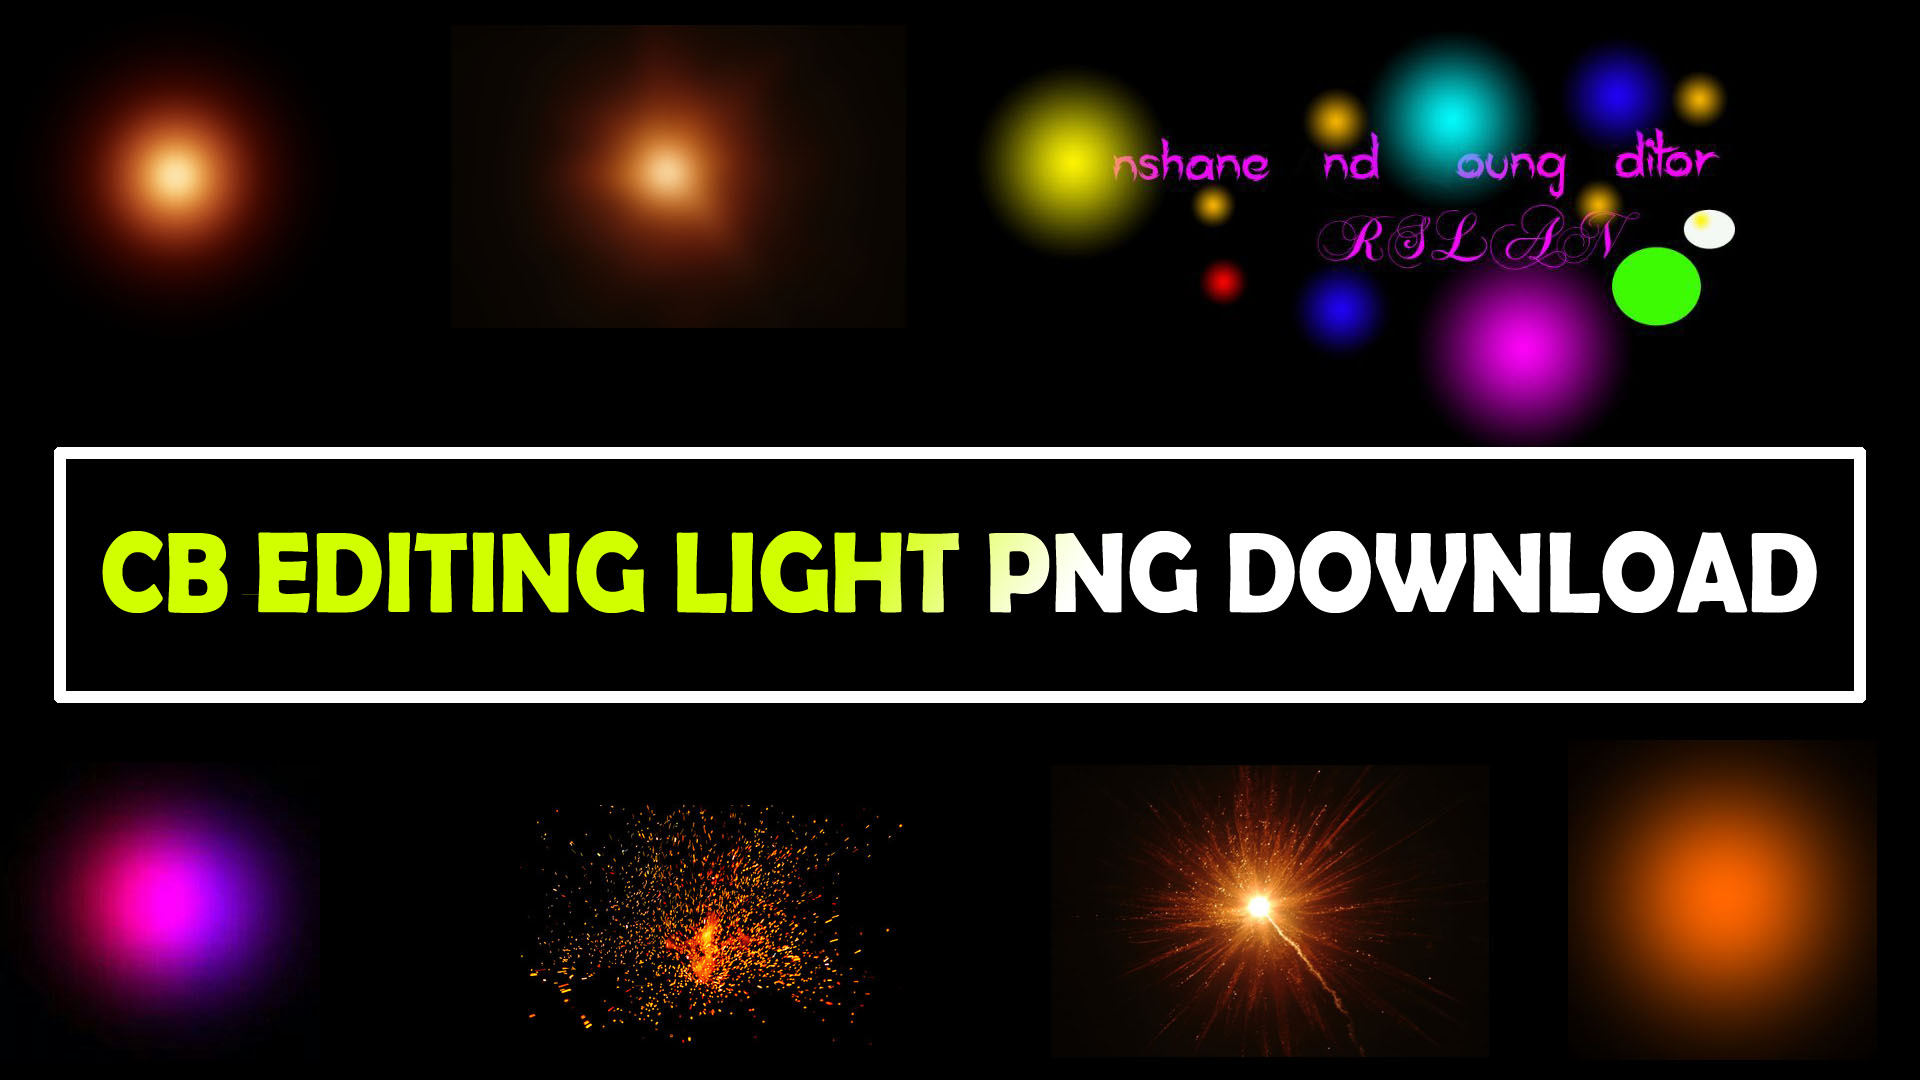 Download Free png New ] All Editing 200+ CB light PNG Zip File.